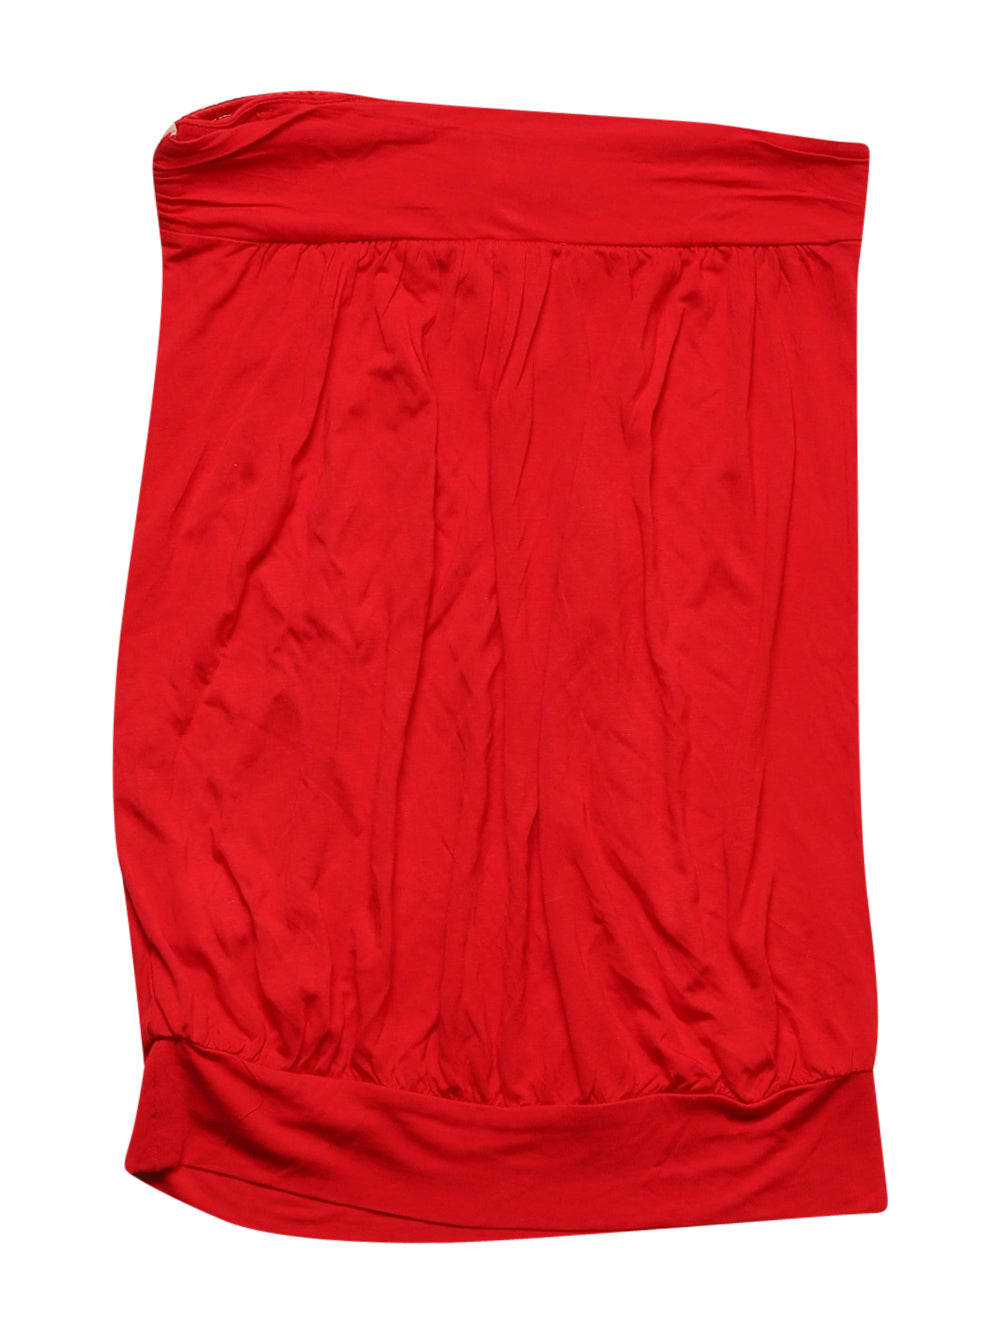 Back photo of Preloved Motivi Red Woman's sleeveless top - size 8/S